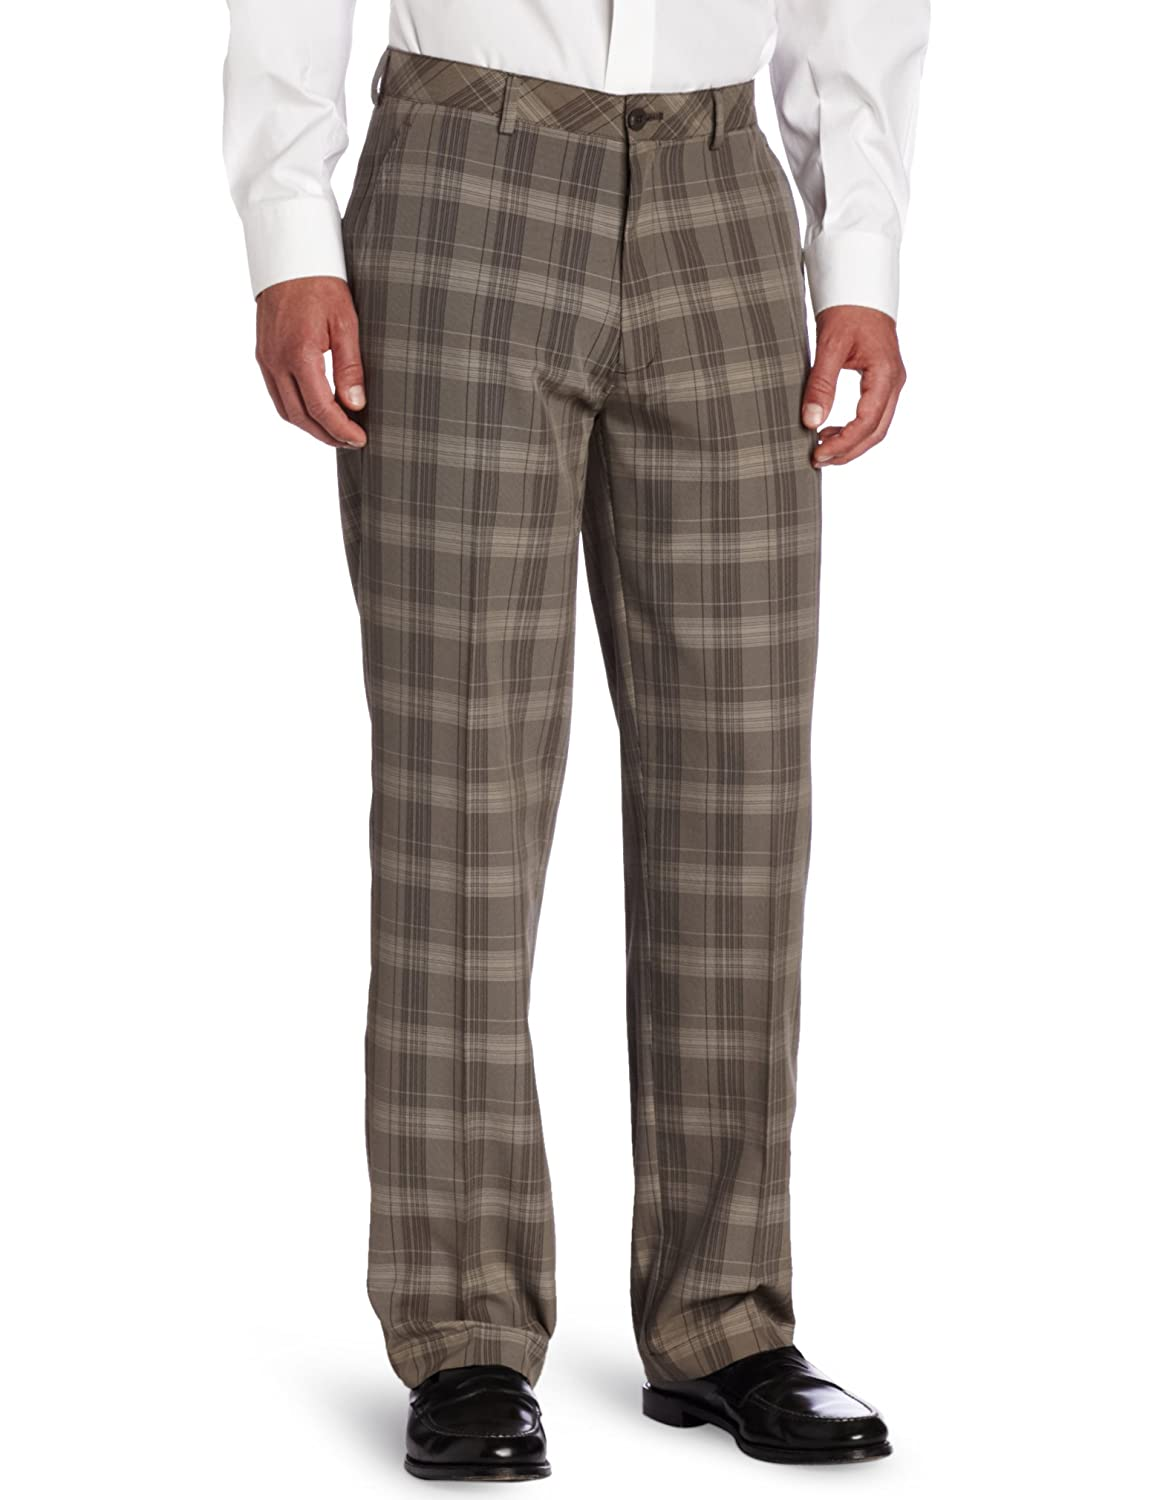 Men's Vintage Style Pants, Trousers, Jeans, Overalls Glen Plaid Straight Fit Flat Front Pant $49.19 AT vintagedancer.com